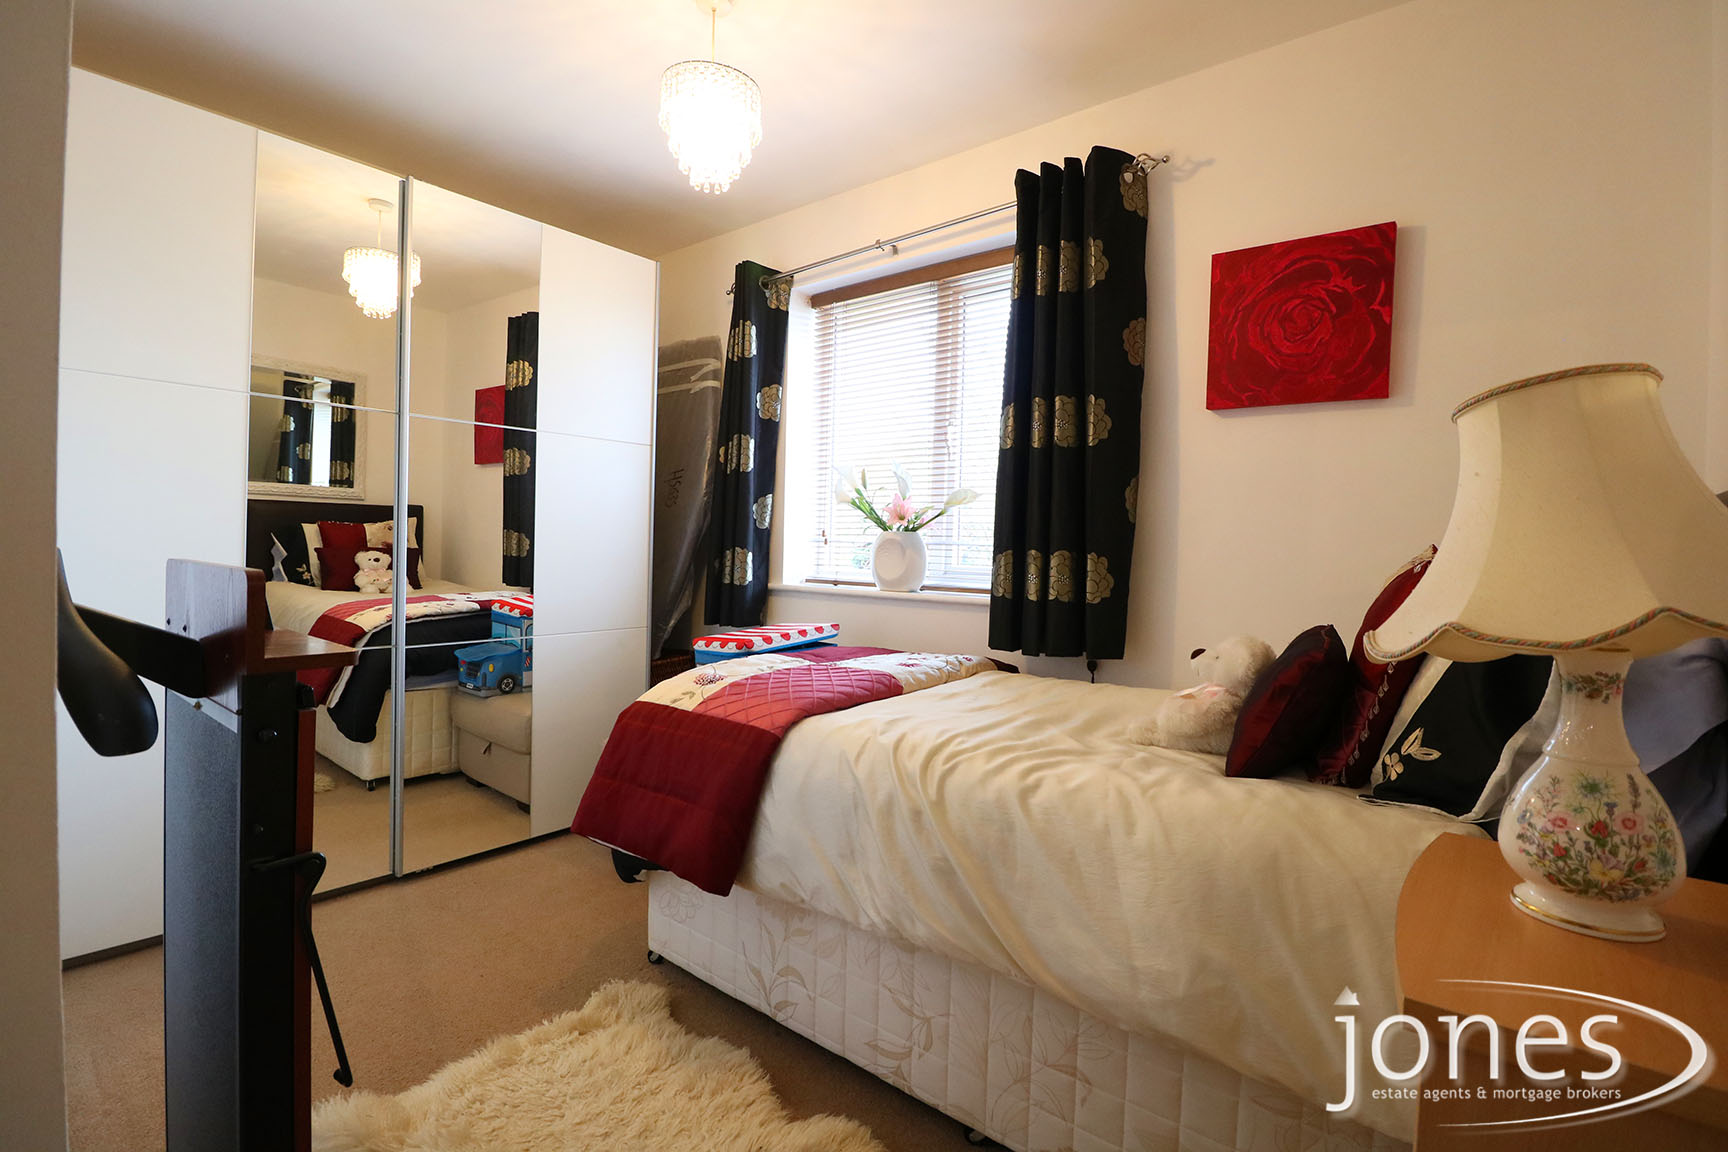 Home for Sale Let - Photo 10 West End Way, Stockton on Tees, TS18 3UA